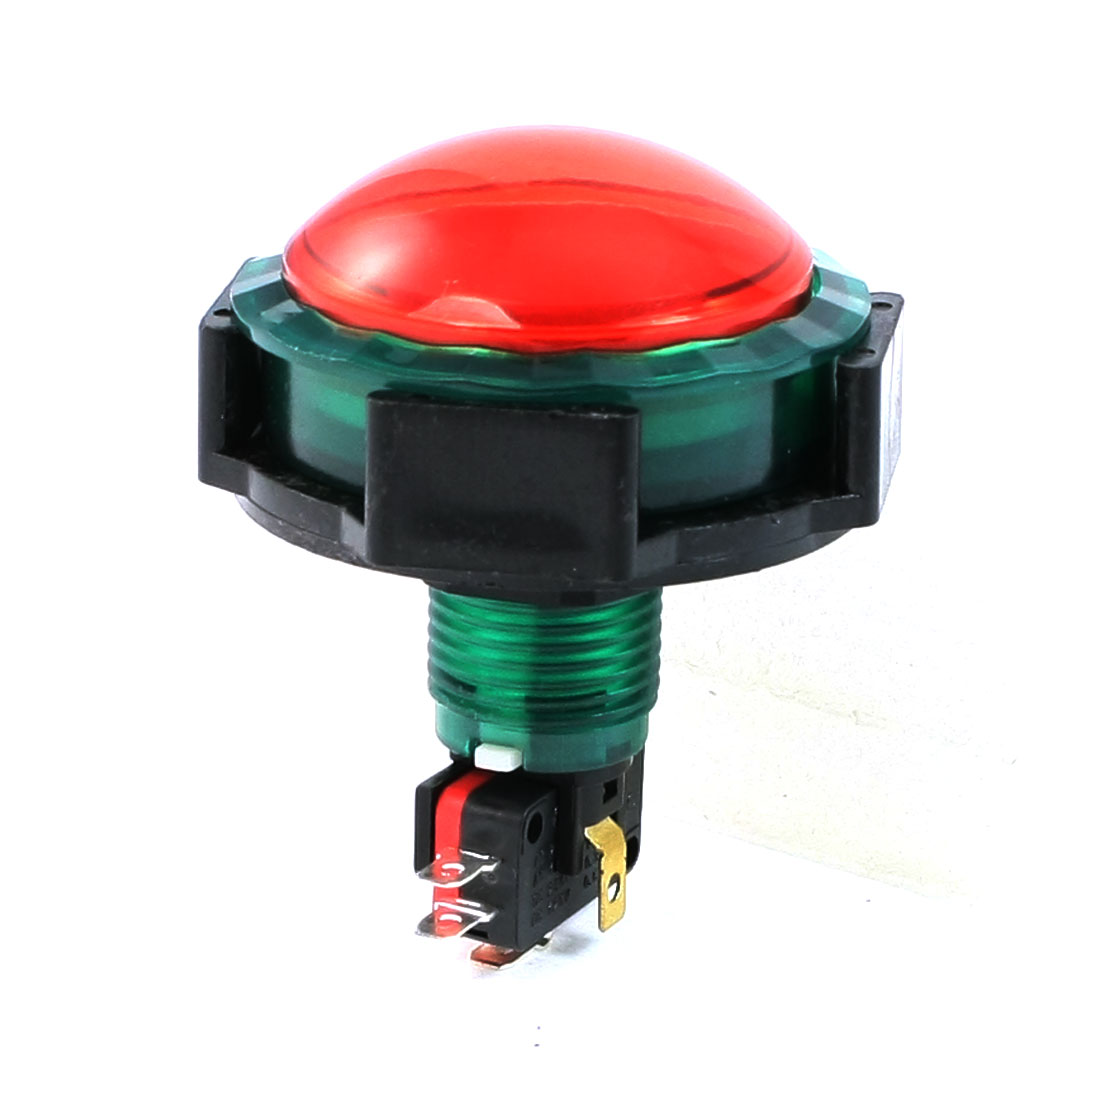 AC 125V 250V 15A Green Black Shell DC 12V Red Lamp Momentary Push Button Switch